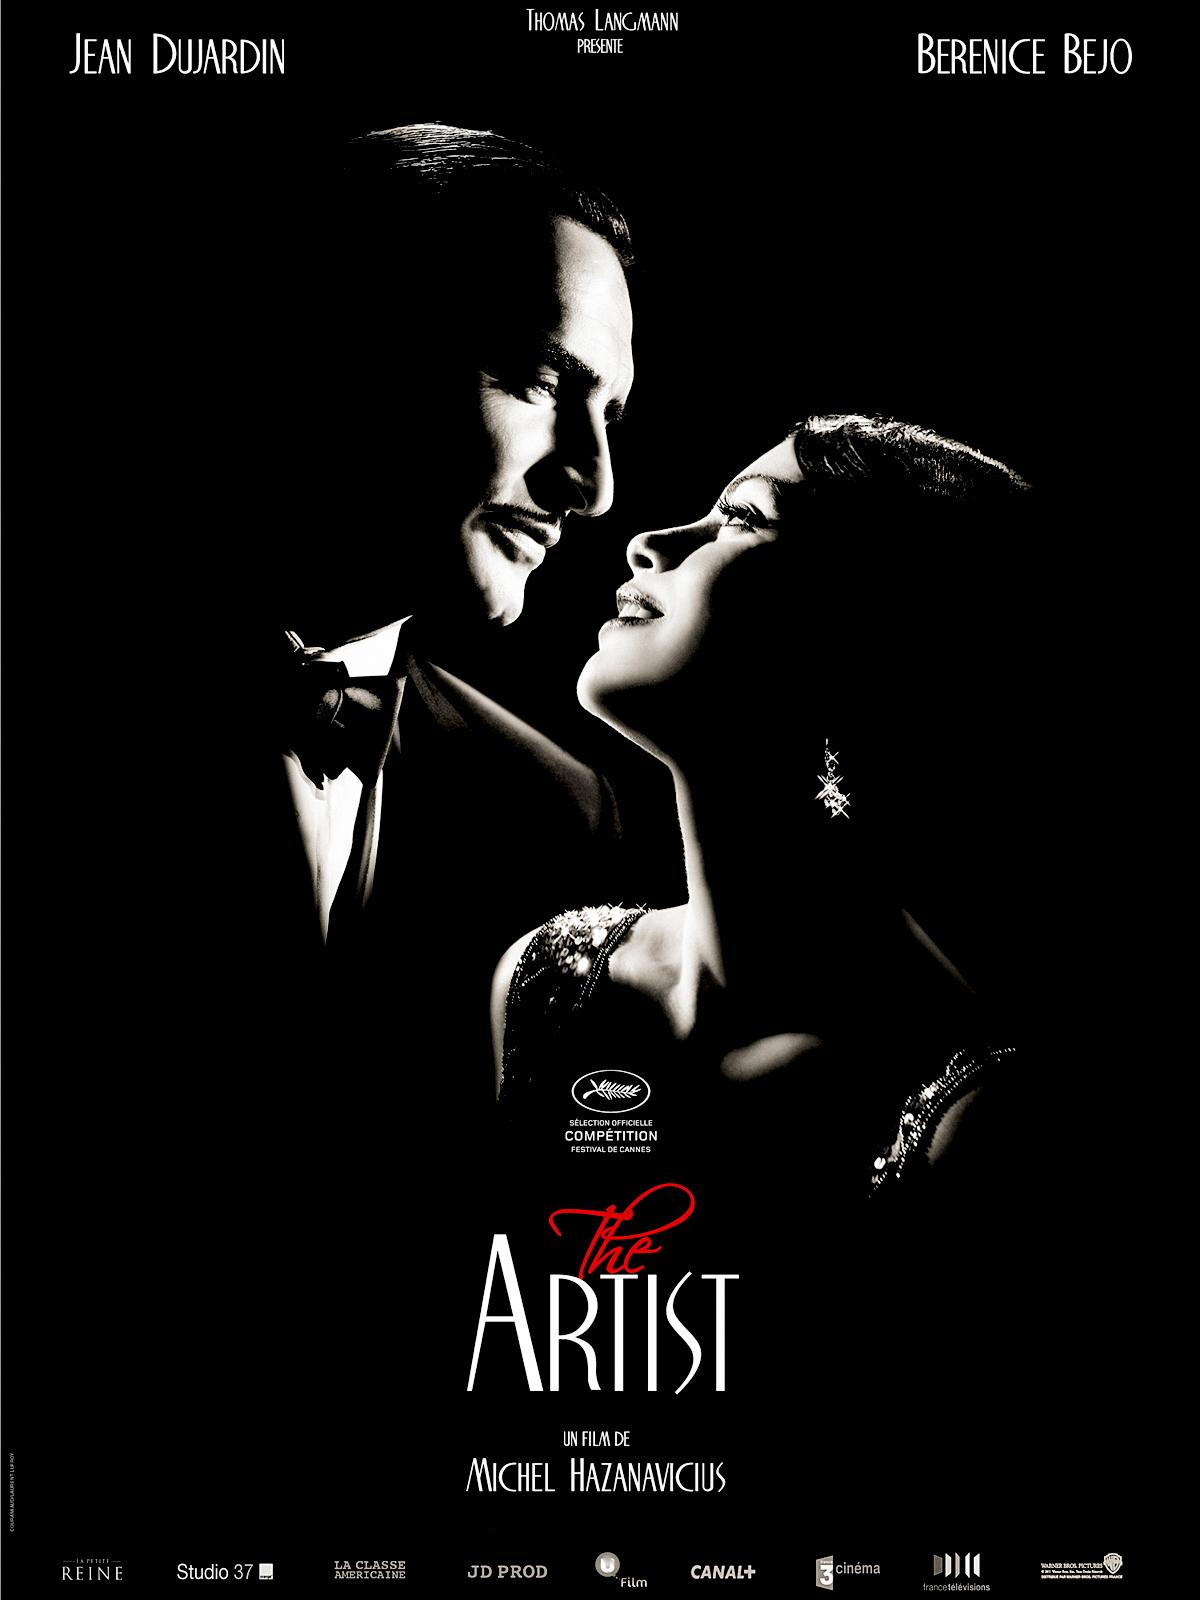 The_Artist_2012_Oscar_Awards_Nominee_Poster-Vvallpaper.Net.jpg (1200×1600)